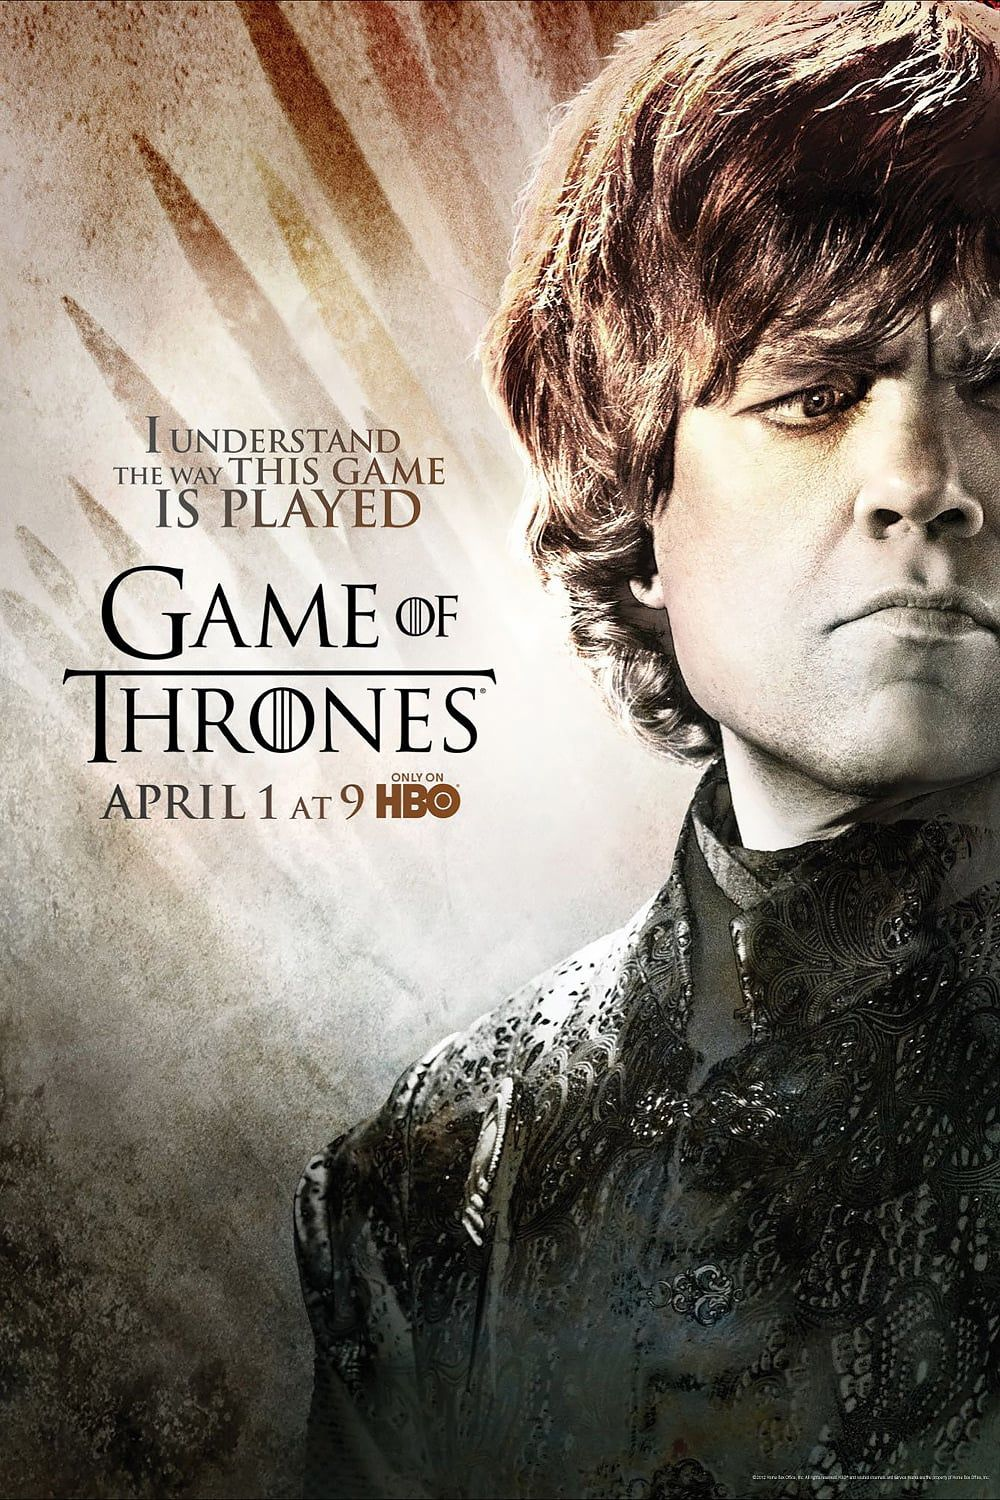 Game Of Thrones Poster High Quality Hd Printable Wallpapers Season Tyrion Game Of Thrones Tyrion Hbo Tyrion